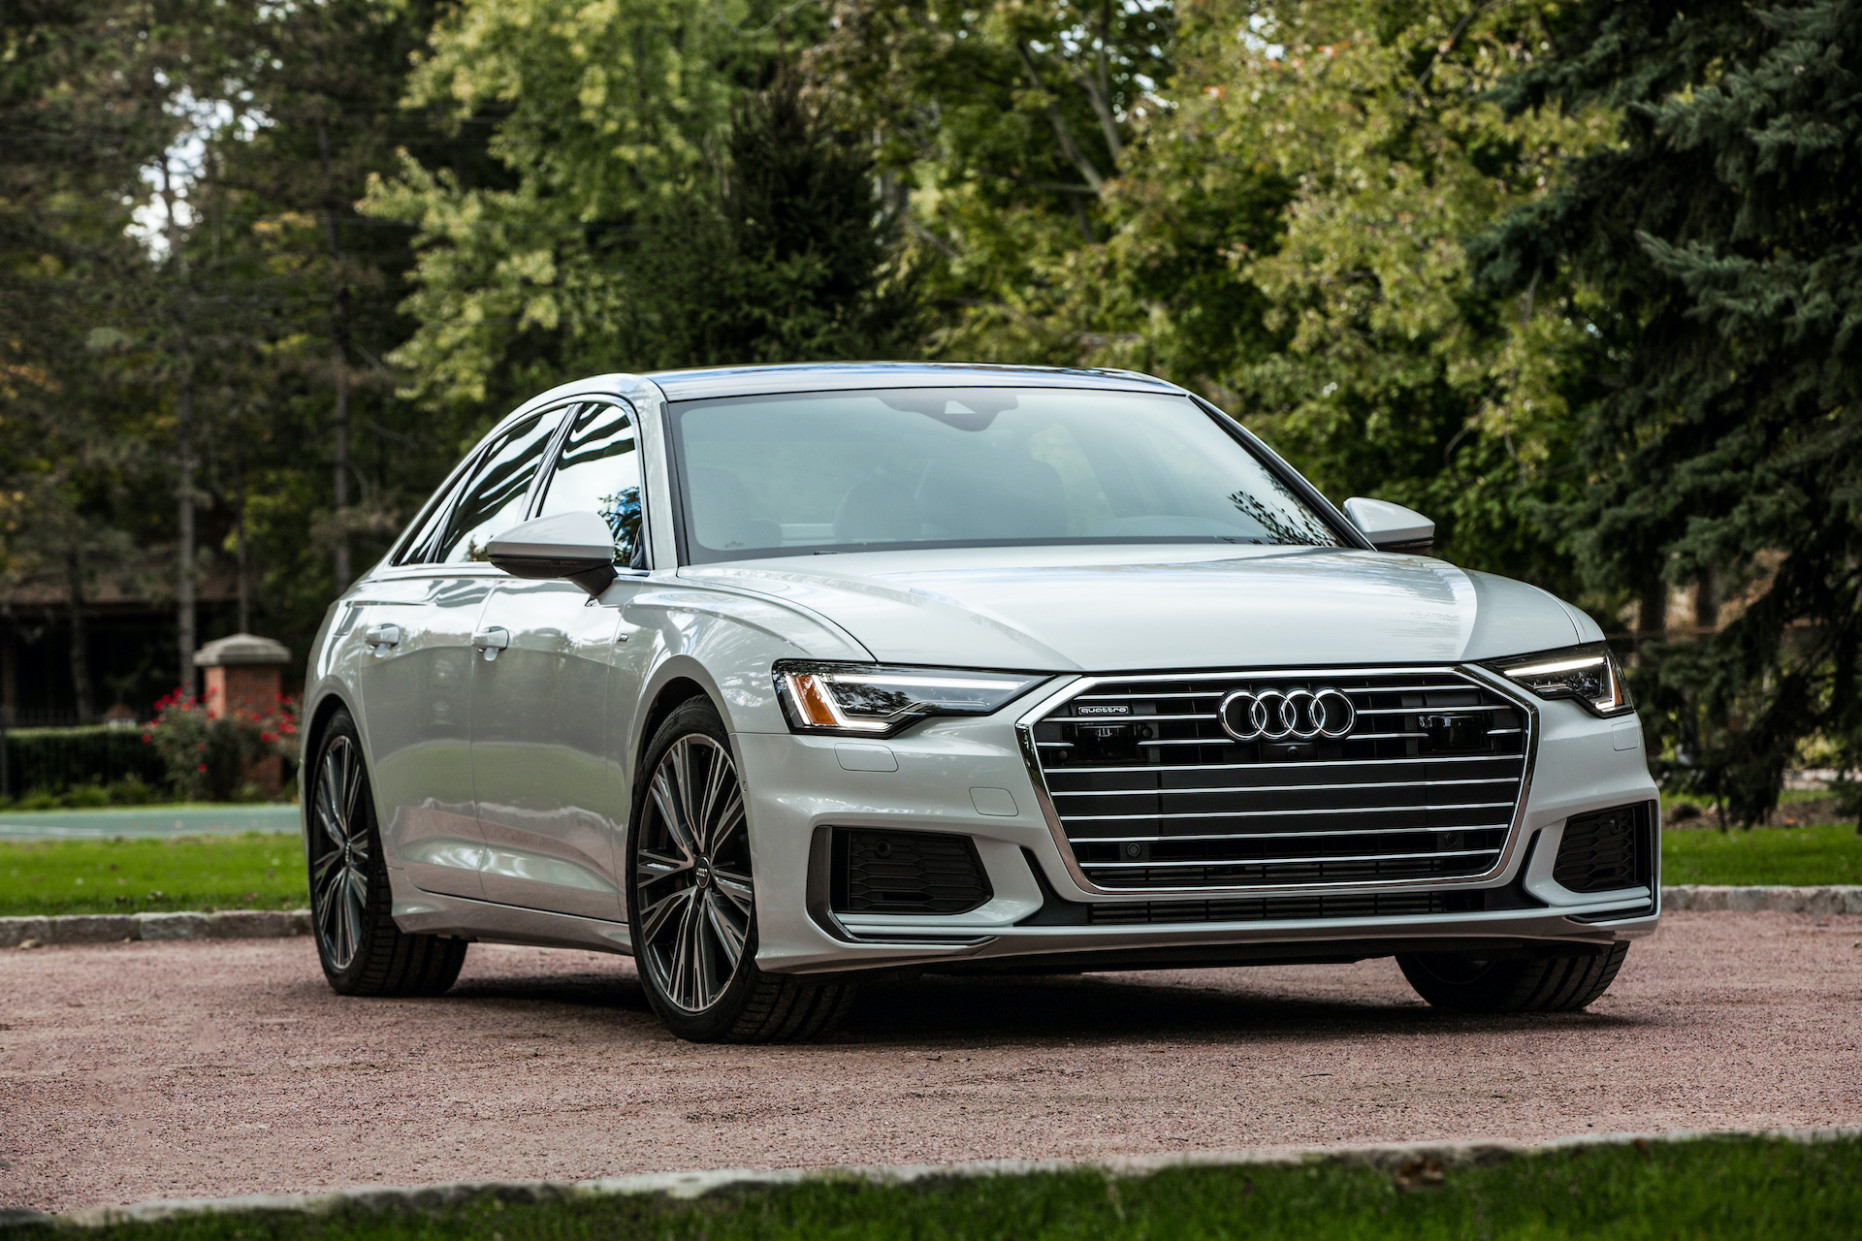 6 Audi A6 Review, Ratings, Specs, Prices, and Photos - The Car ..